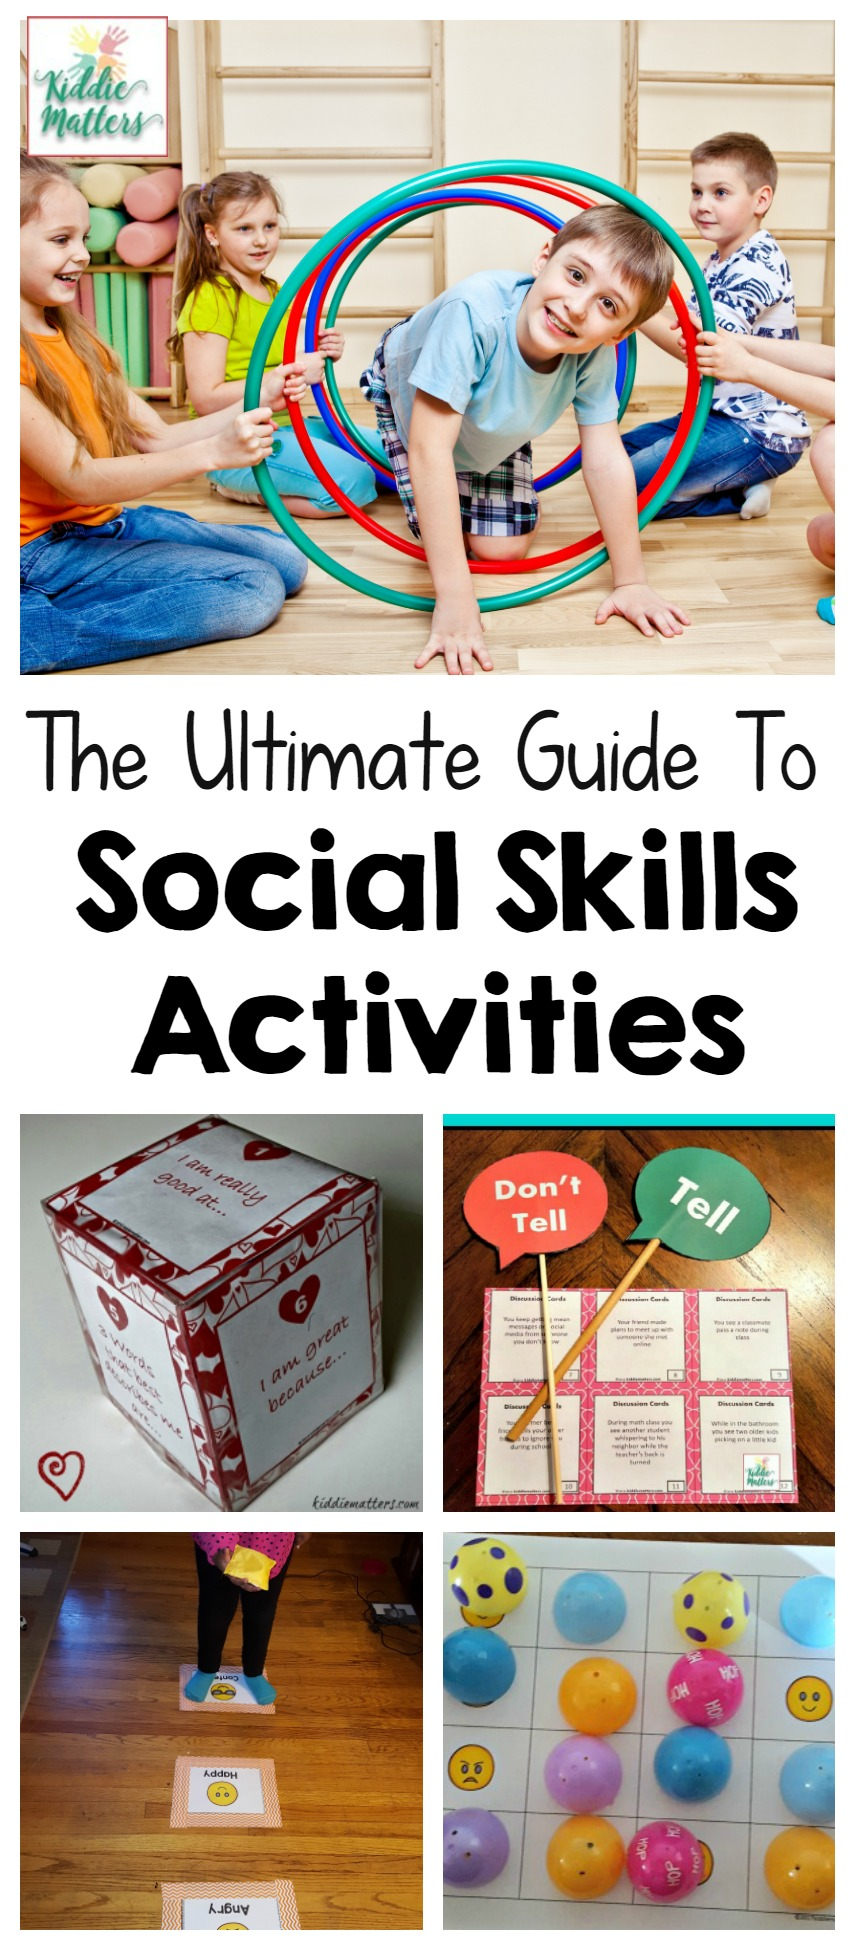 Social skills activities to teach children empathy, how to make friends, how to take turns, and more! #socialskills #empathy #schoolcounseling #counseling